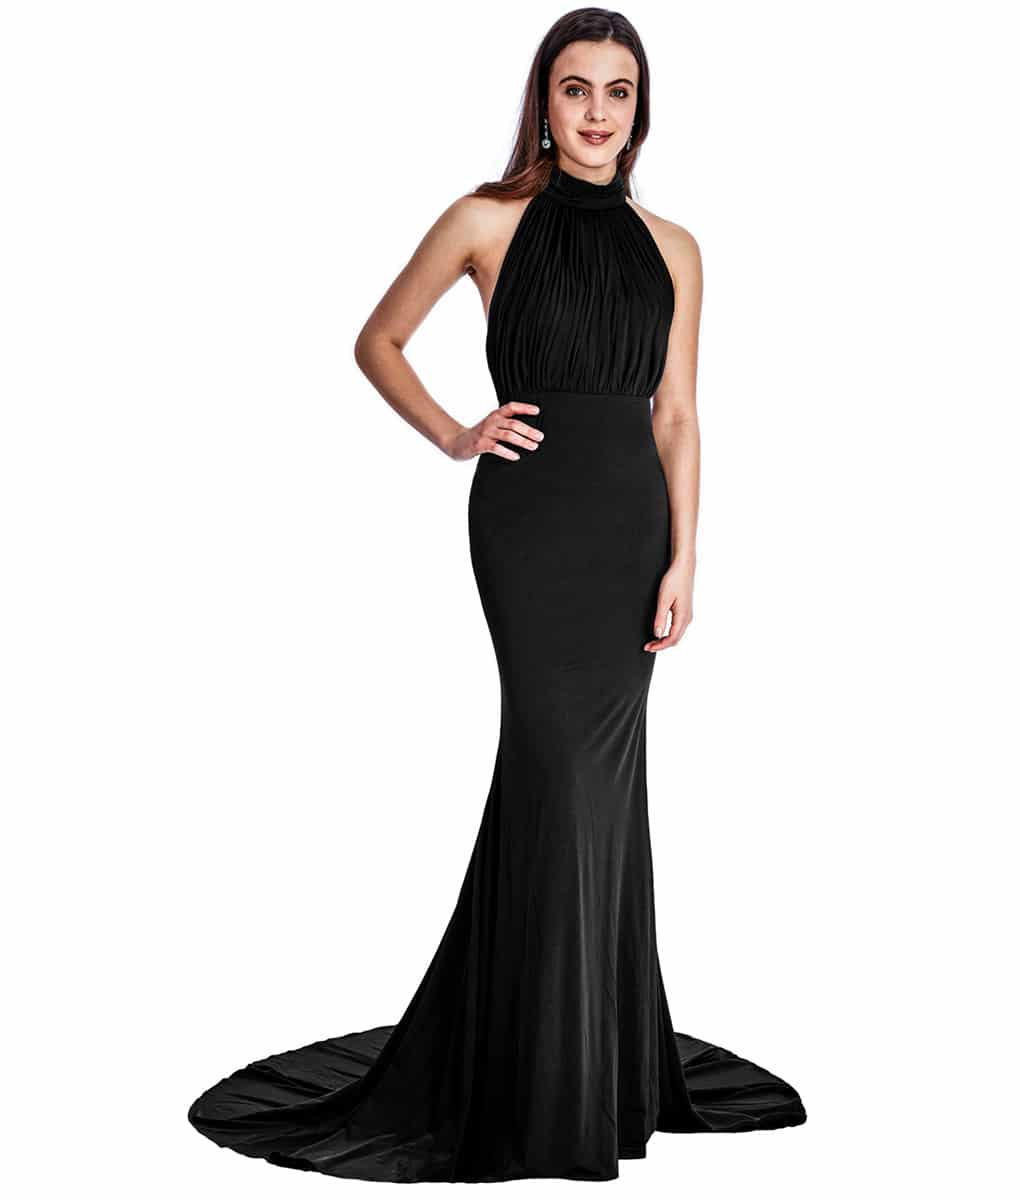 Alila-Black-Backless-long-gown-City-Goddess-front